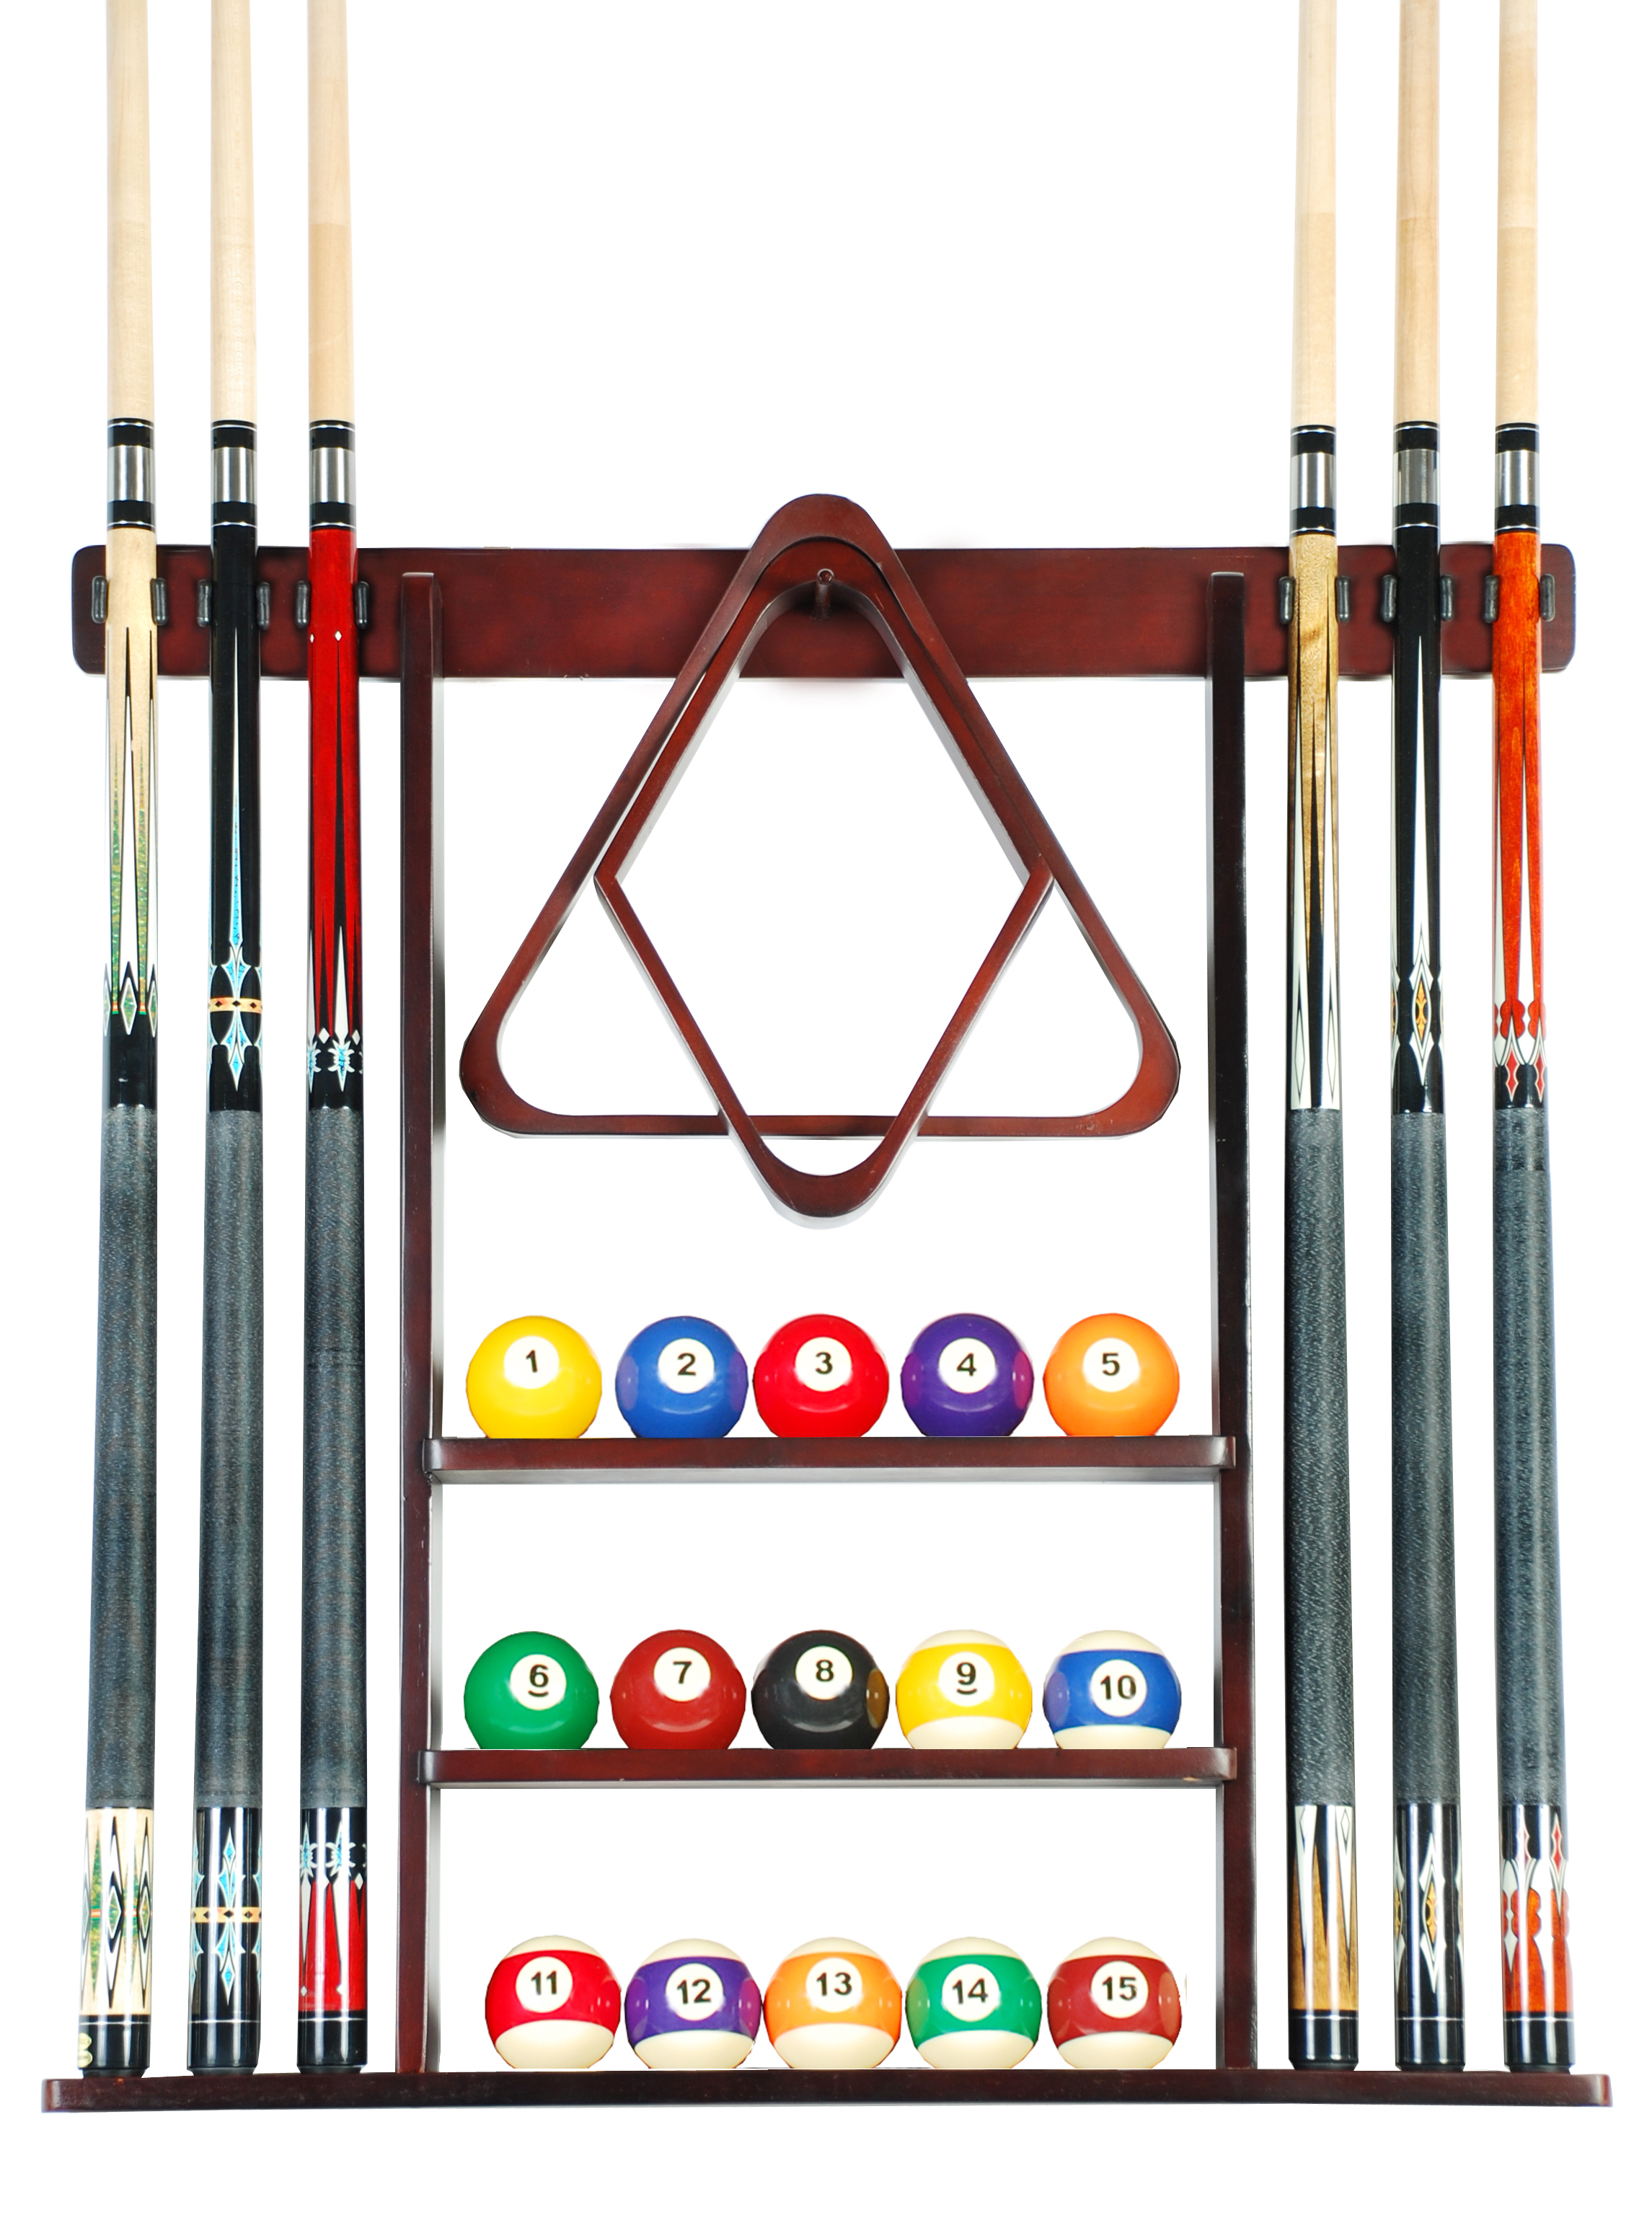 Cue Rack Only- 6 Pool Billiard Stick + Ball Set Wall Rack Holder Mahogany Finish by Iszy Billiards